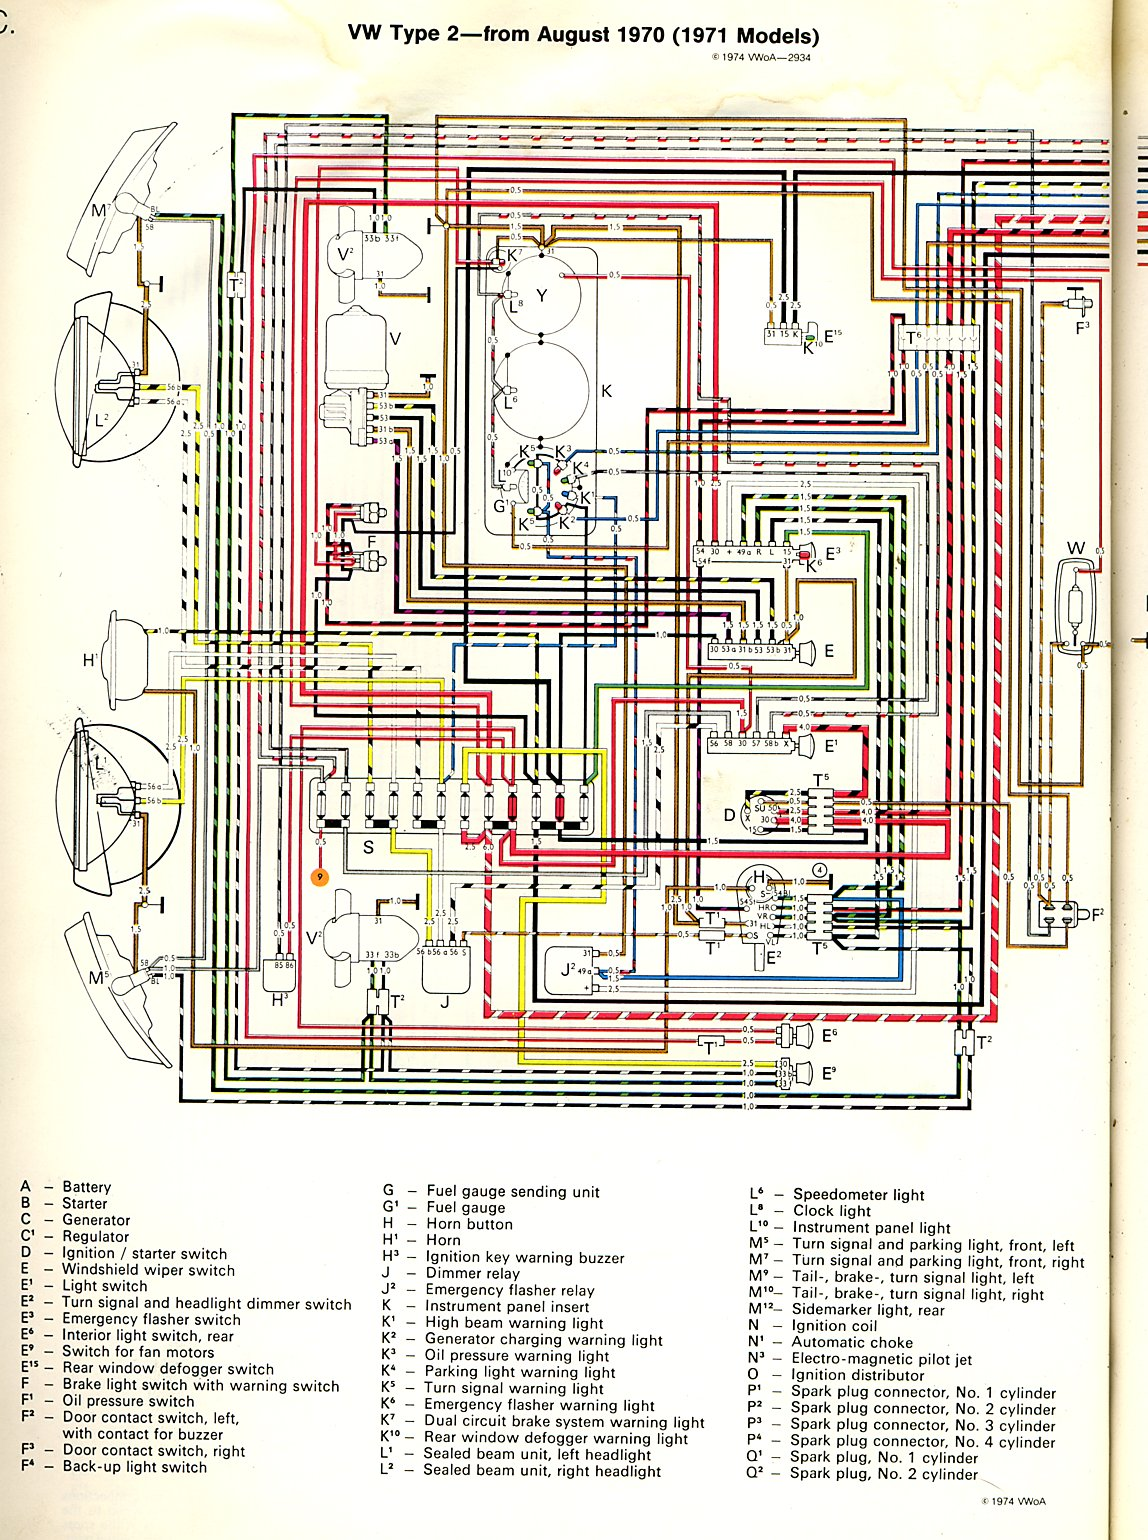 baybus_71a thesamba com type 2 wiring diagrams 1973 vw wiring diagram at fashall.co